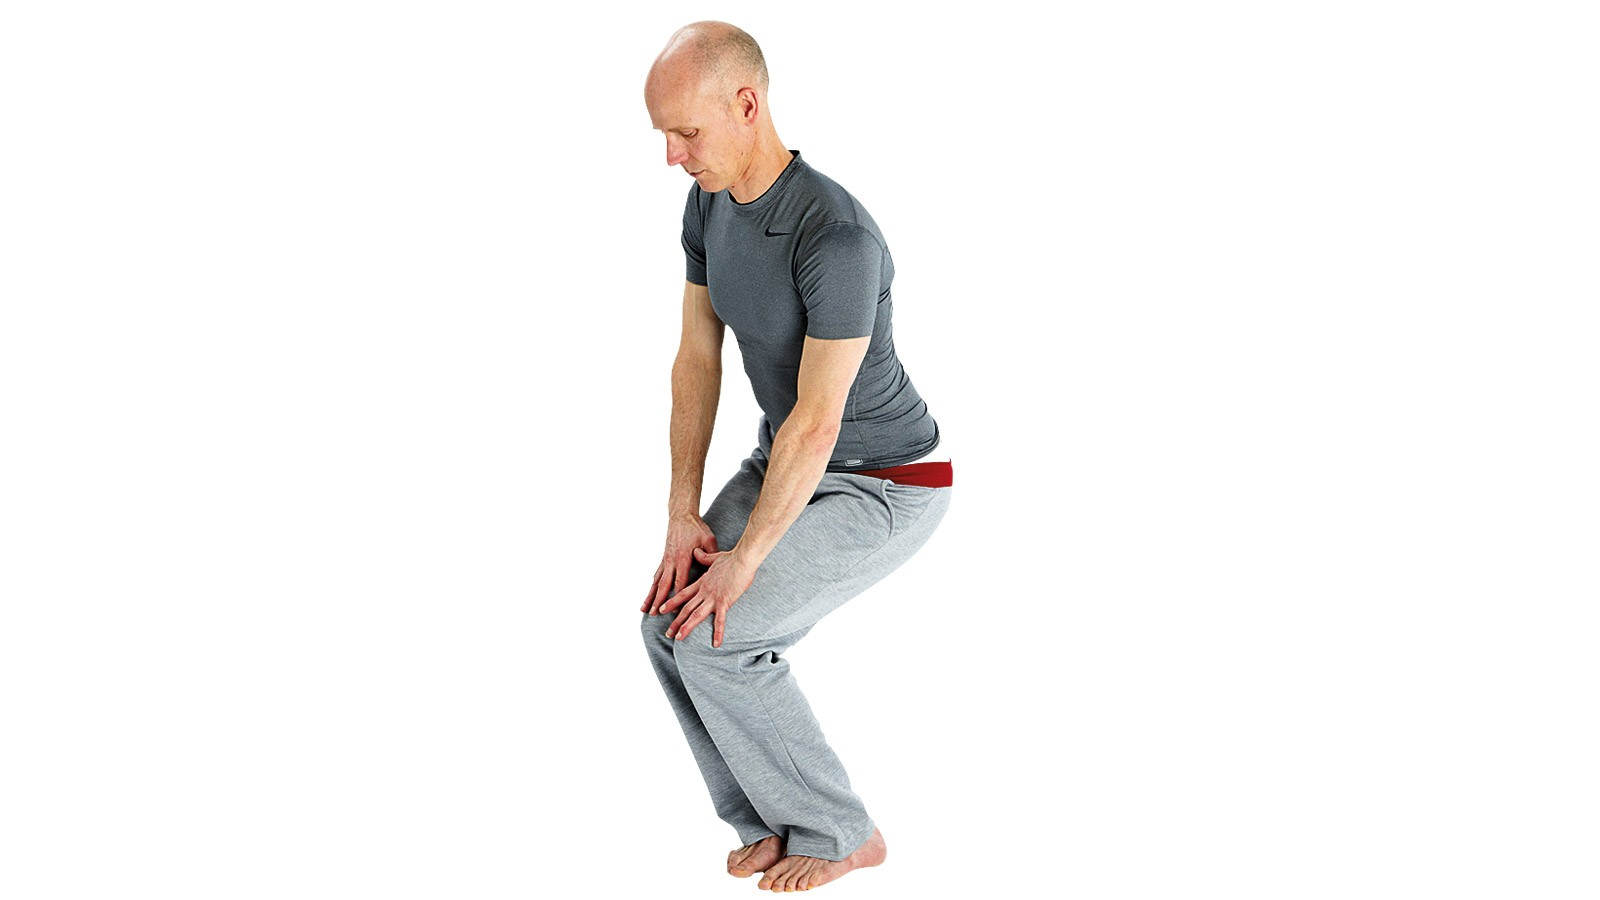 Rotate the knees from small to larger circles. Place hands on top of thighs for balance — try not to put any weight on the hands